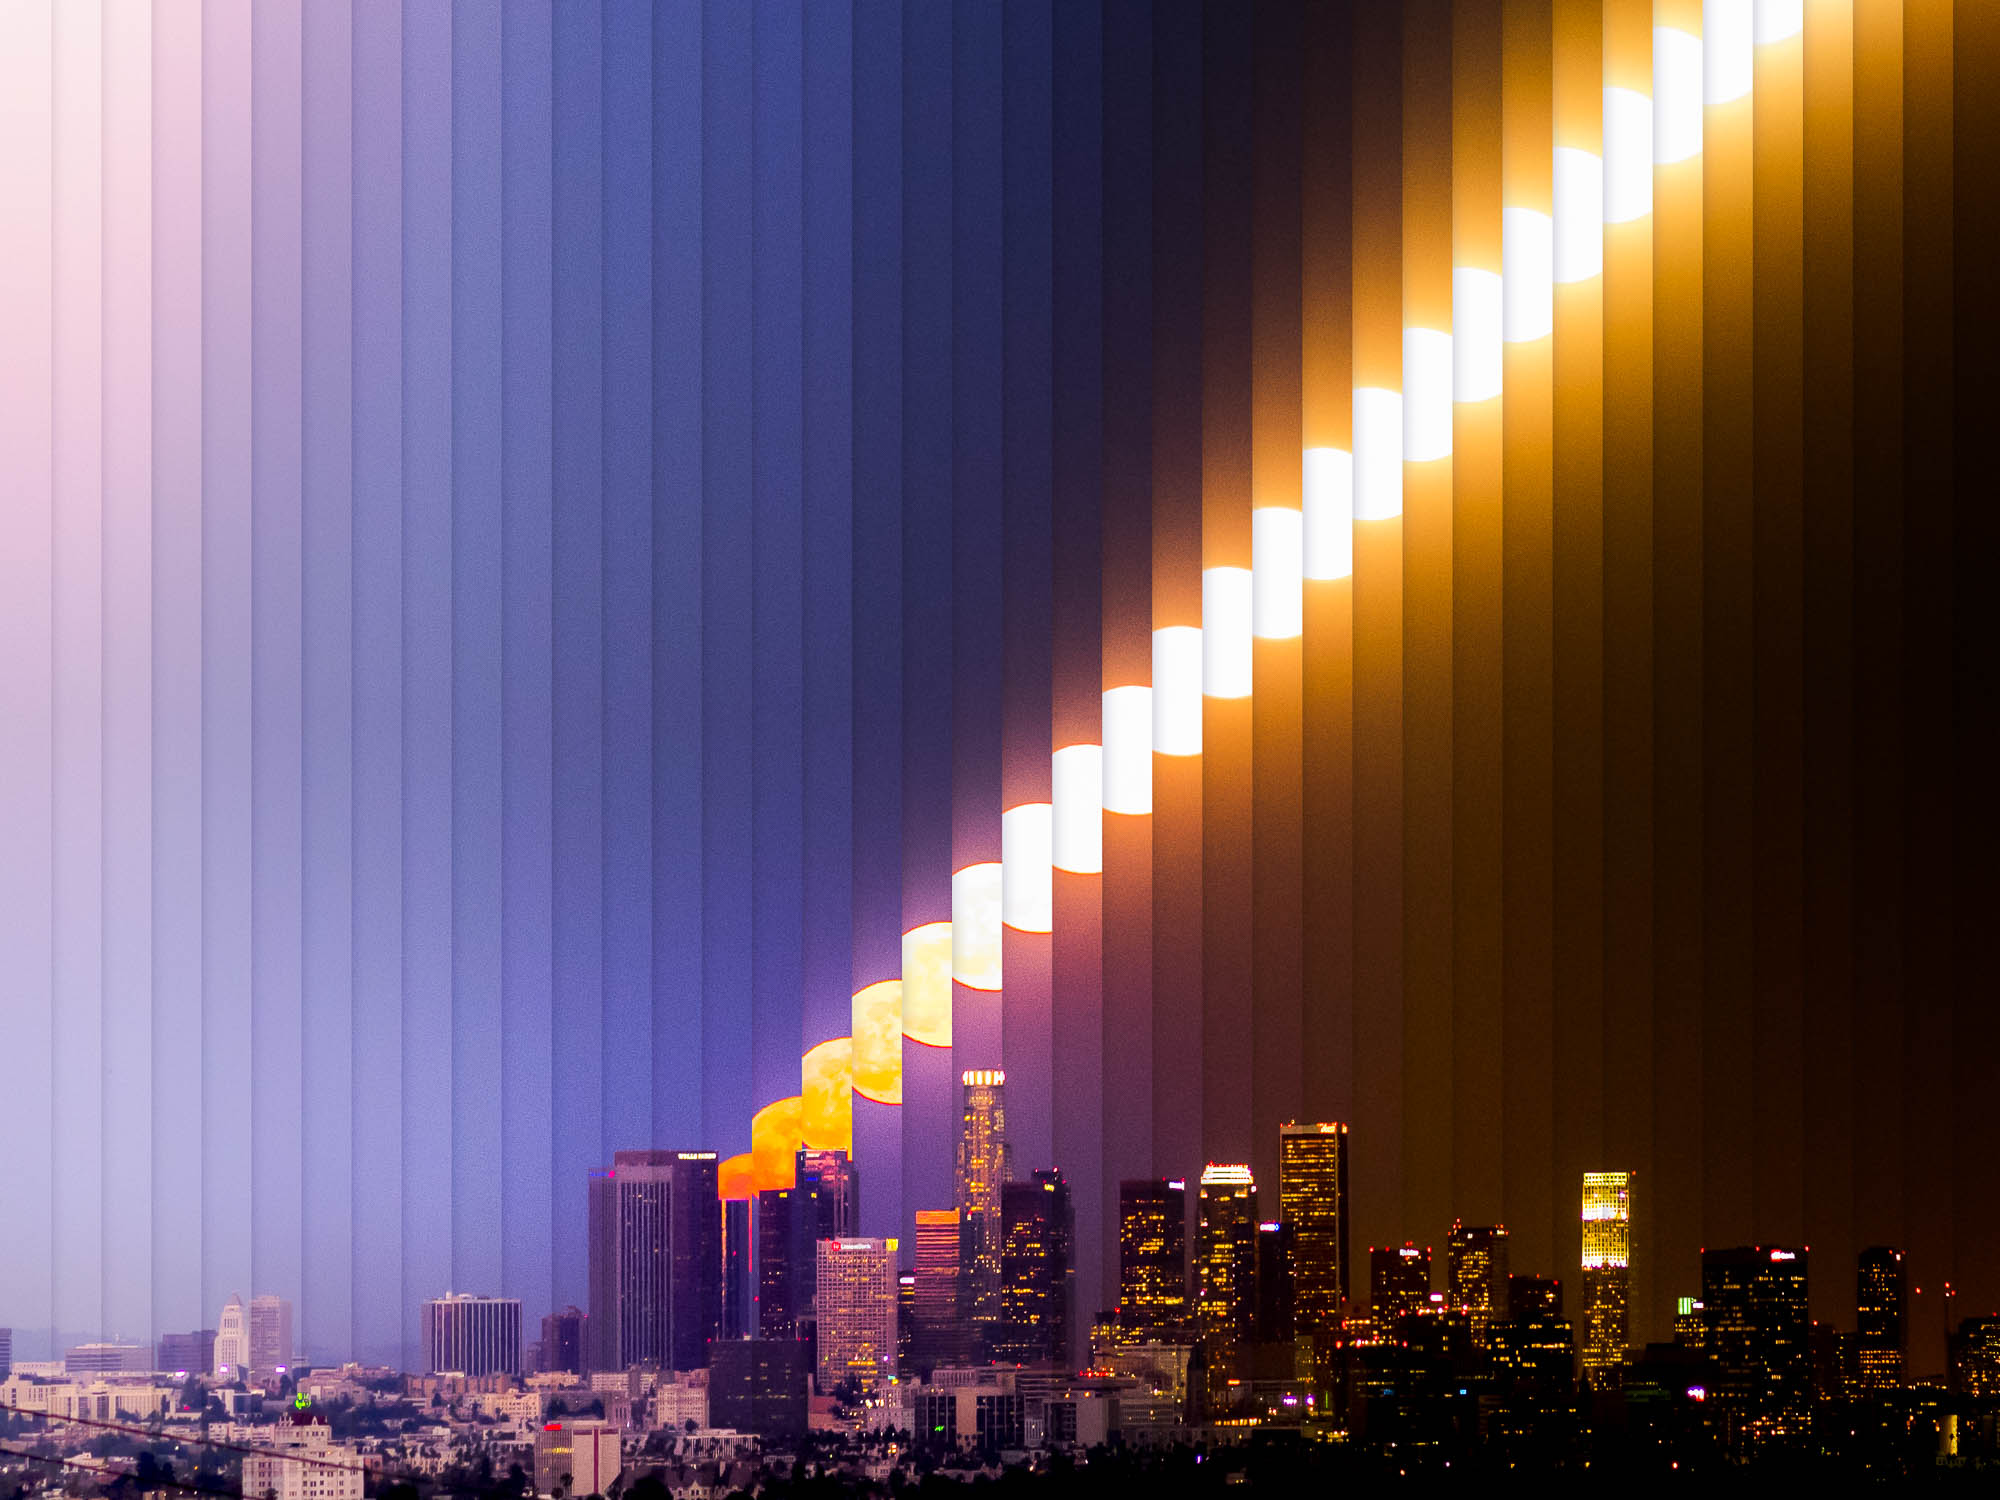 Timeslice Los Angeles in 39 photos